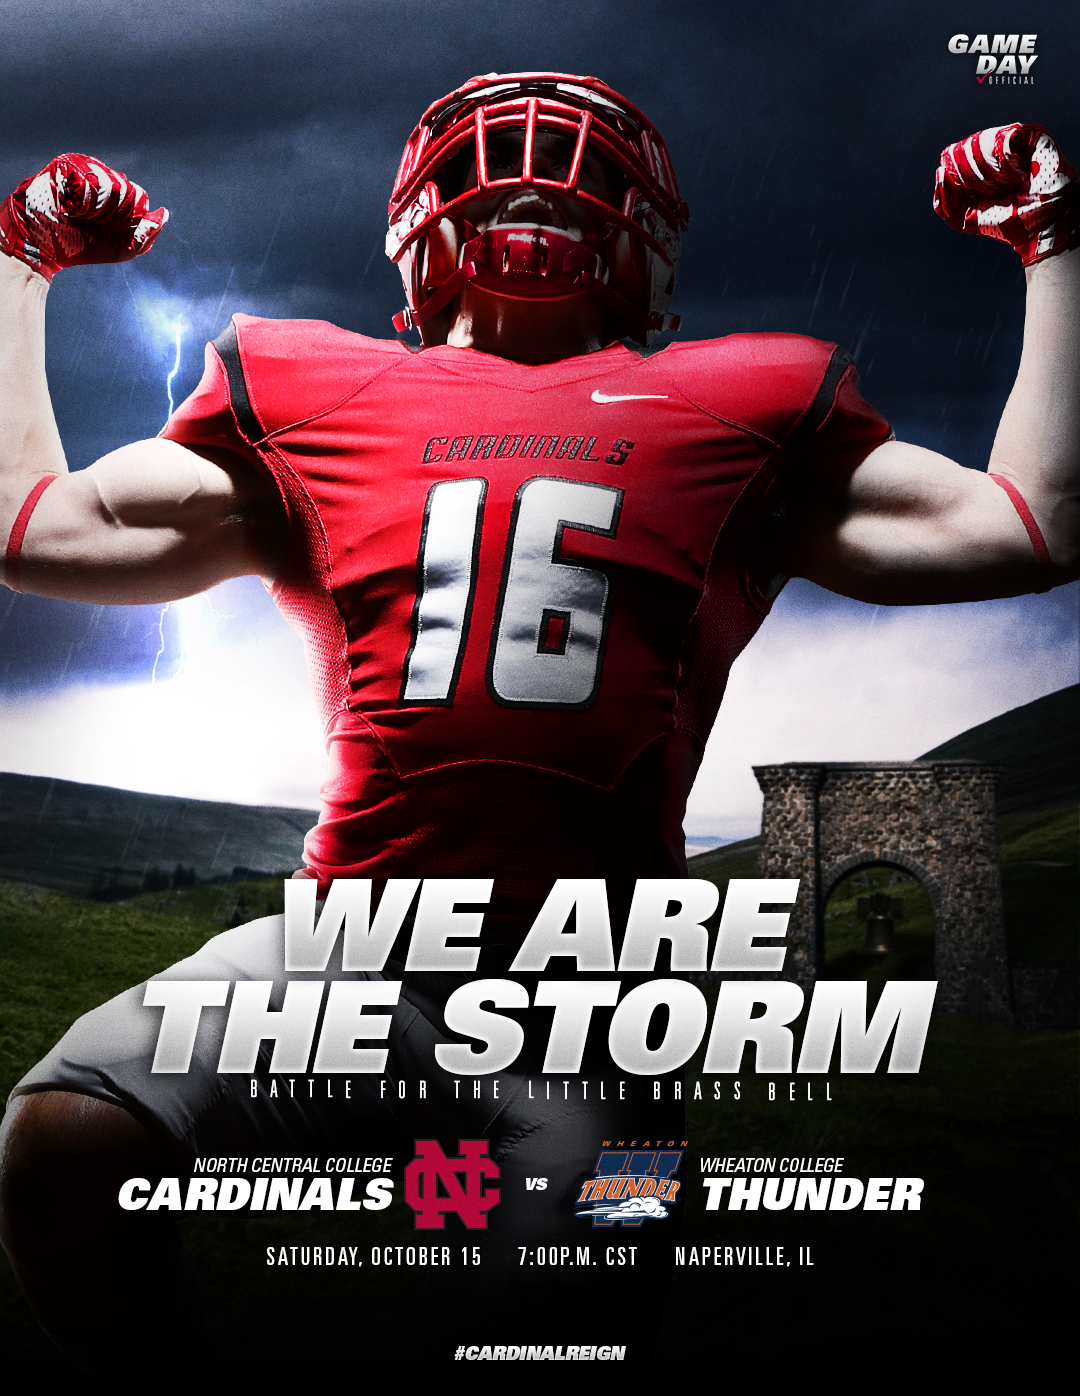 2016 North Central College Football Gameday Graphics On Behance